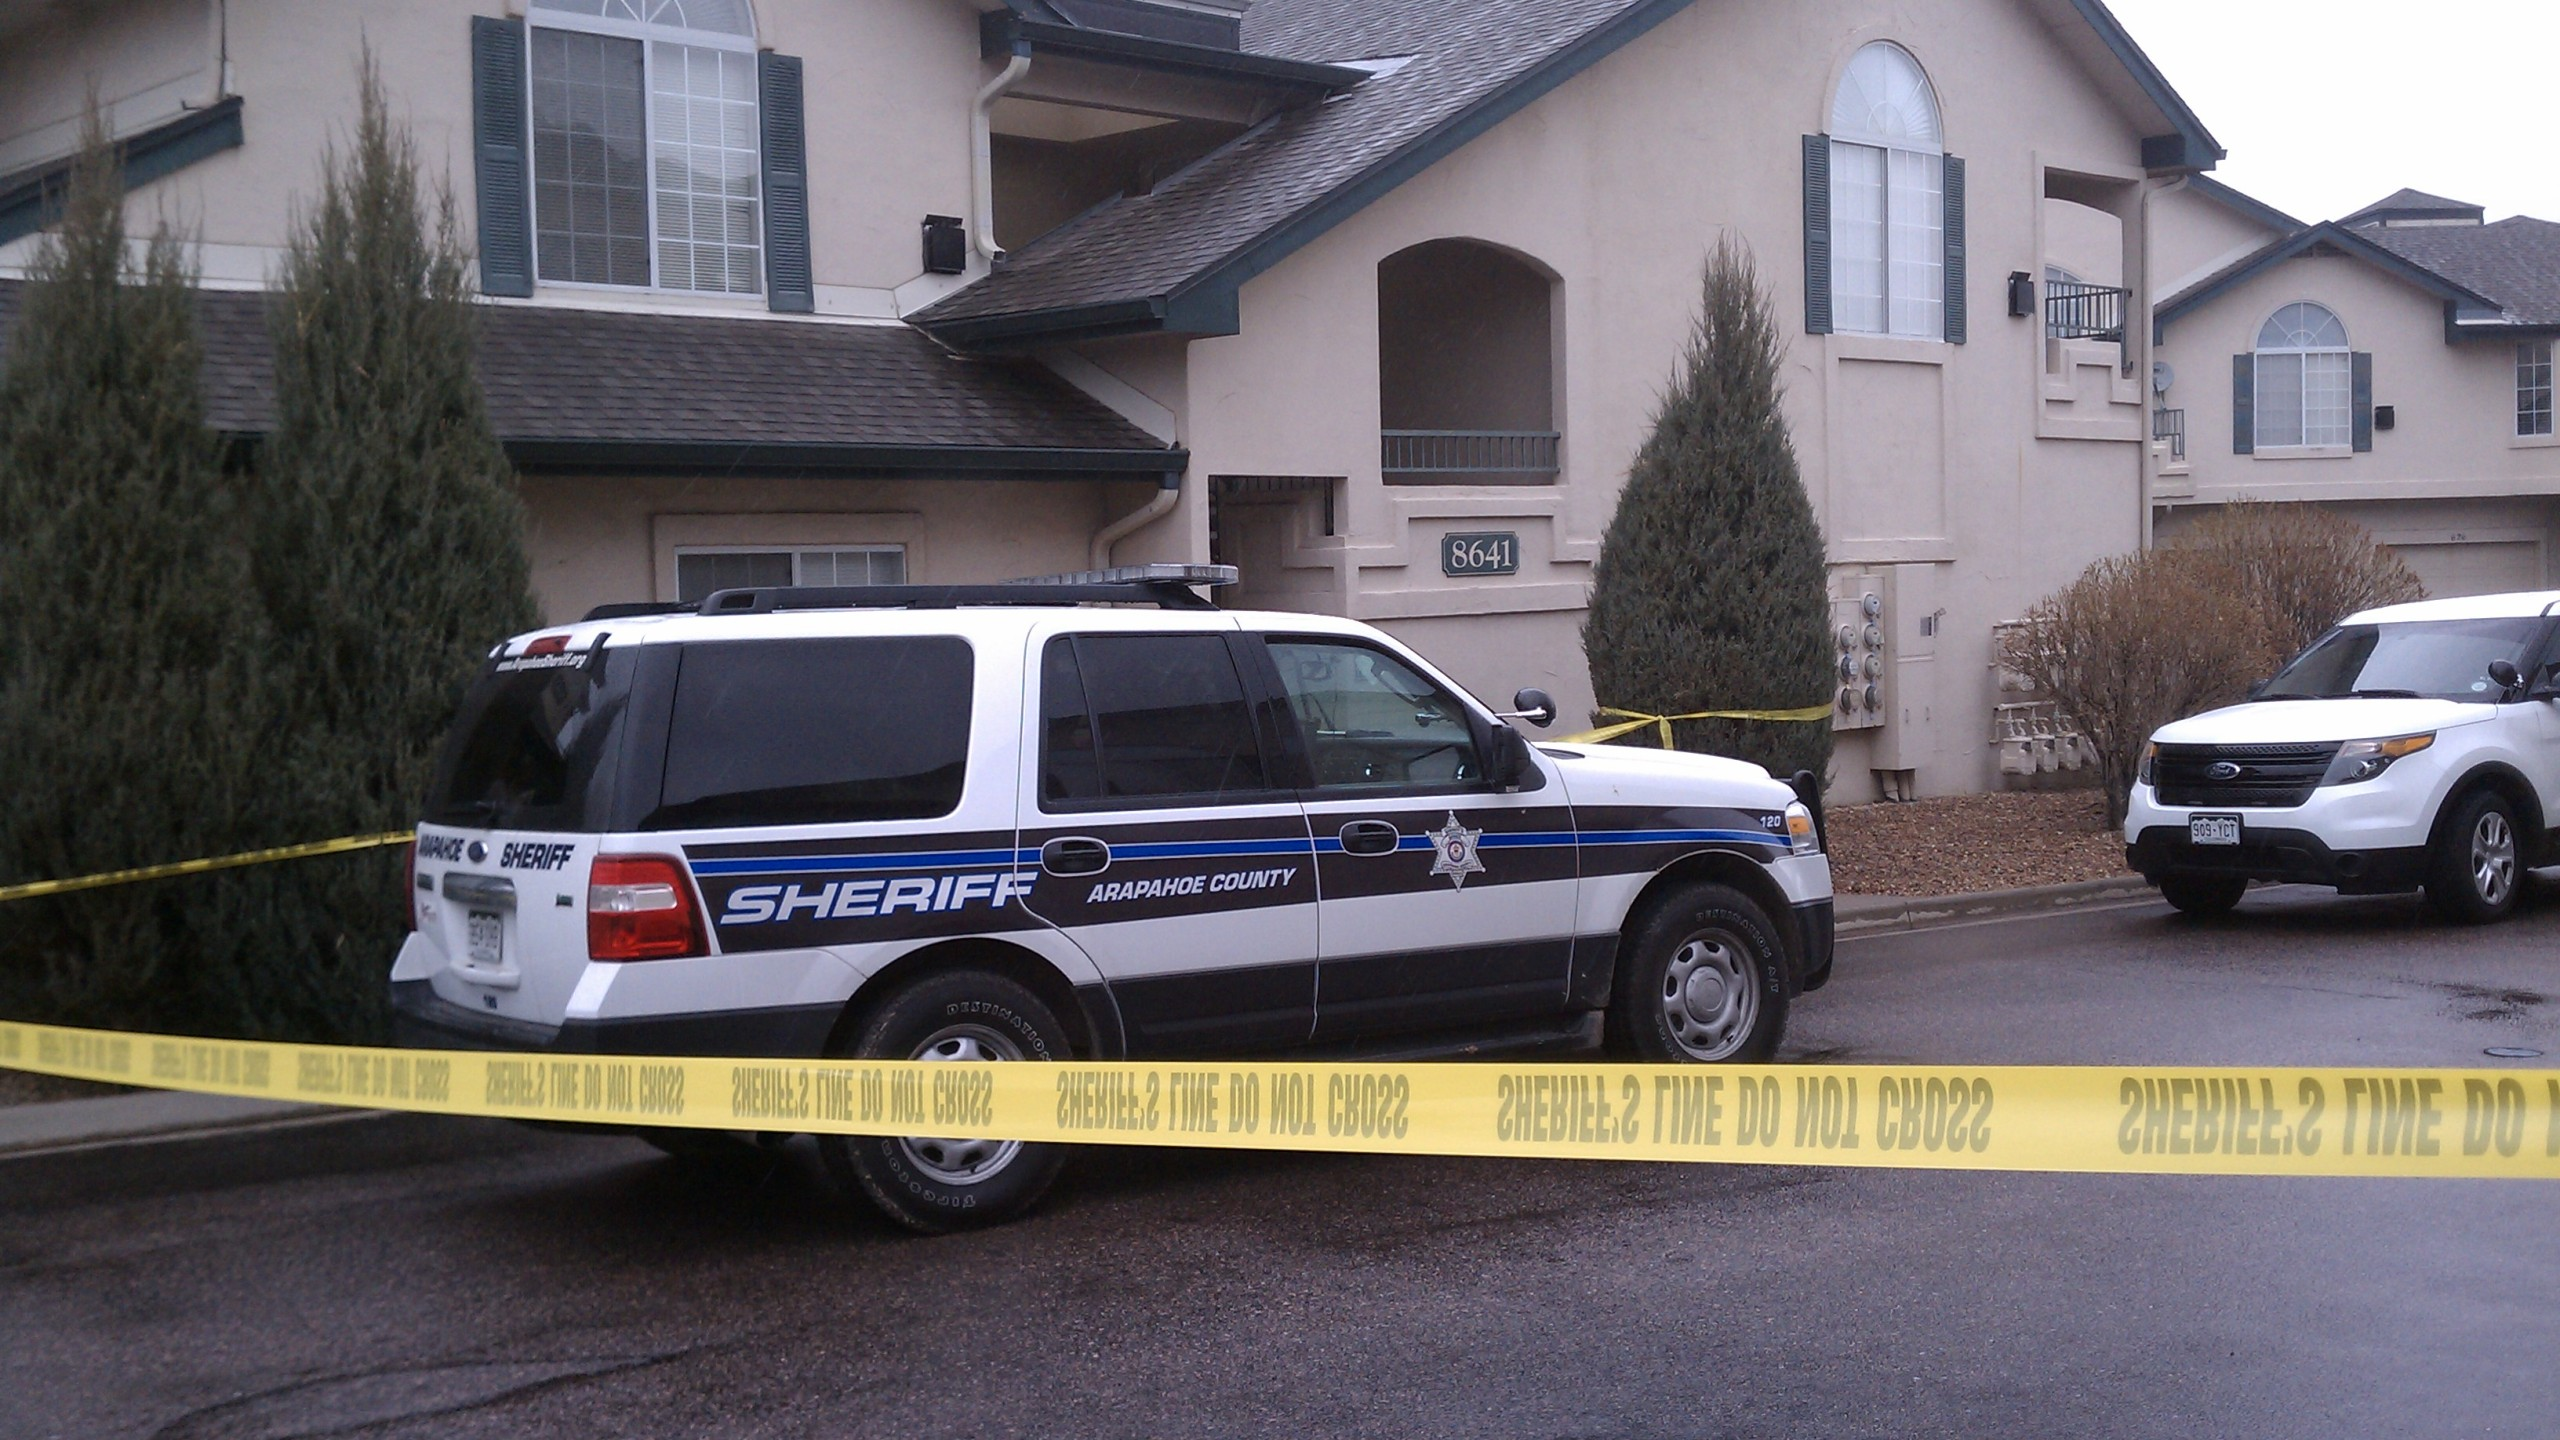 Possible homicide investigated in Arapahoe County